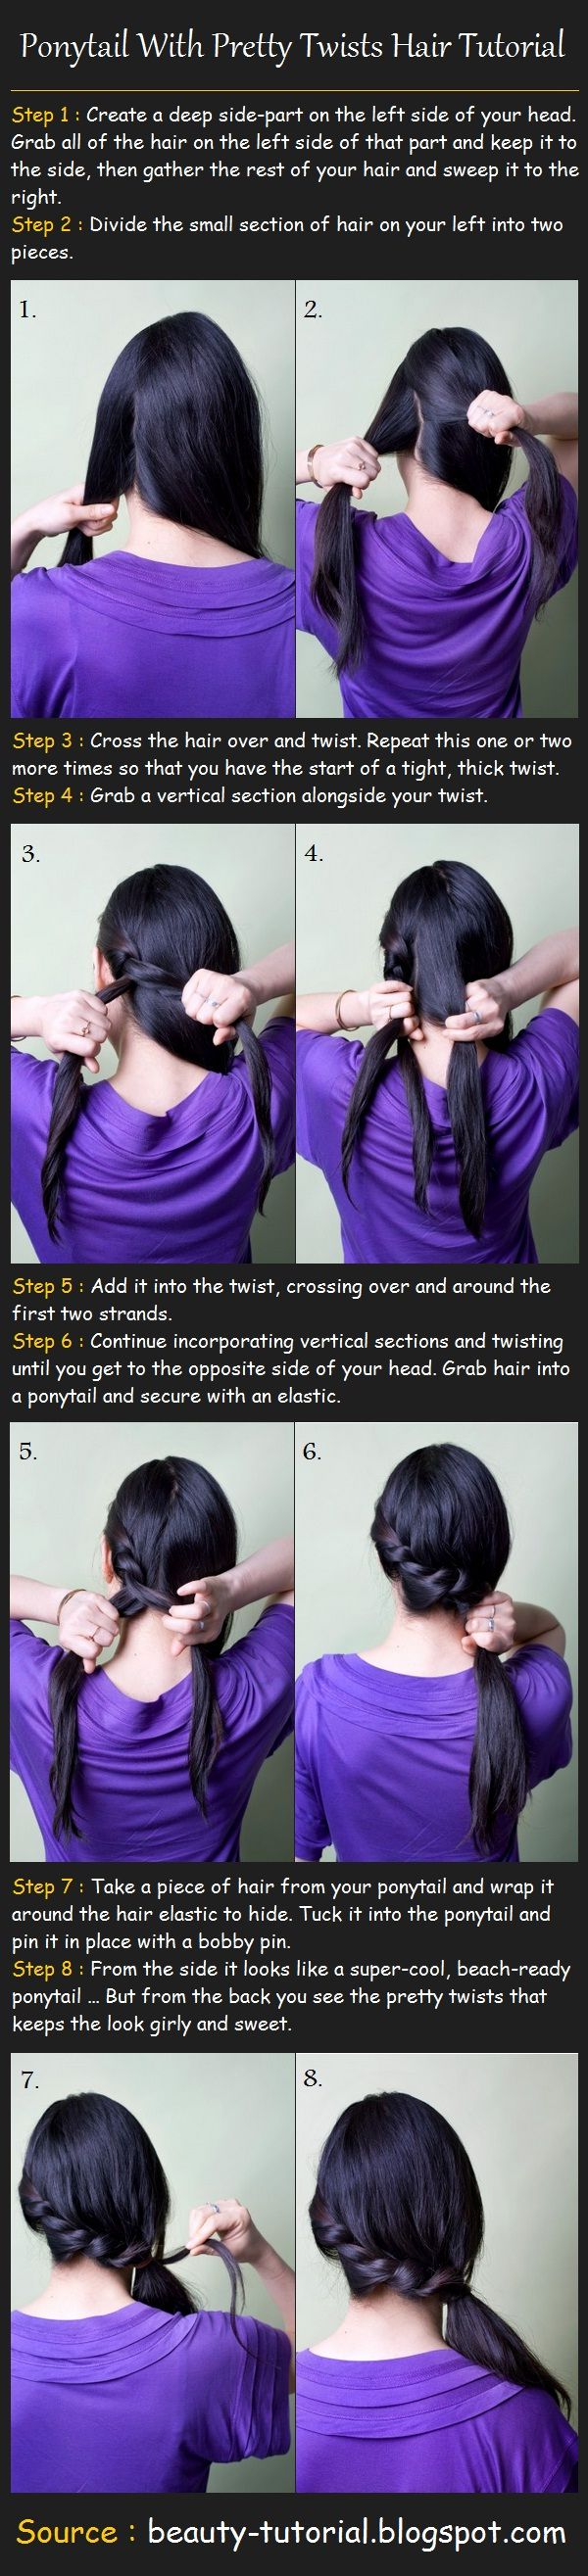 I do this to go to college when my hair is a little (well...VERY) messy.  Ponytail with twists hair tutorial